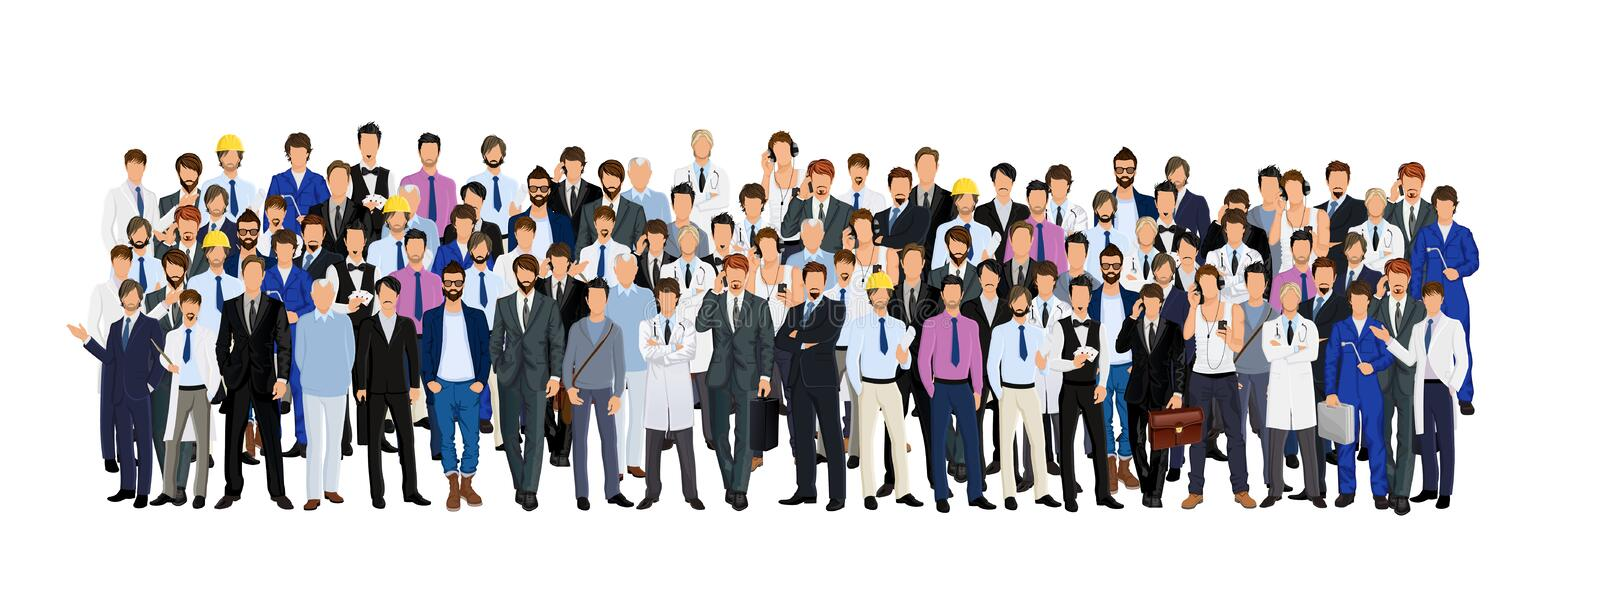 Group of man. Large group crowd of different age men male professionals businessmen vector illustration vector illustration